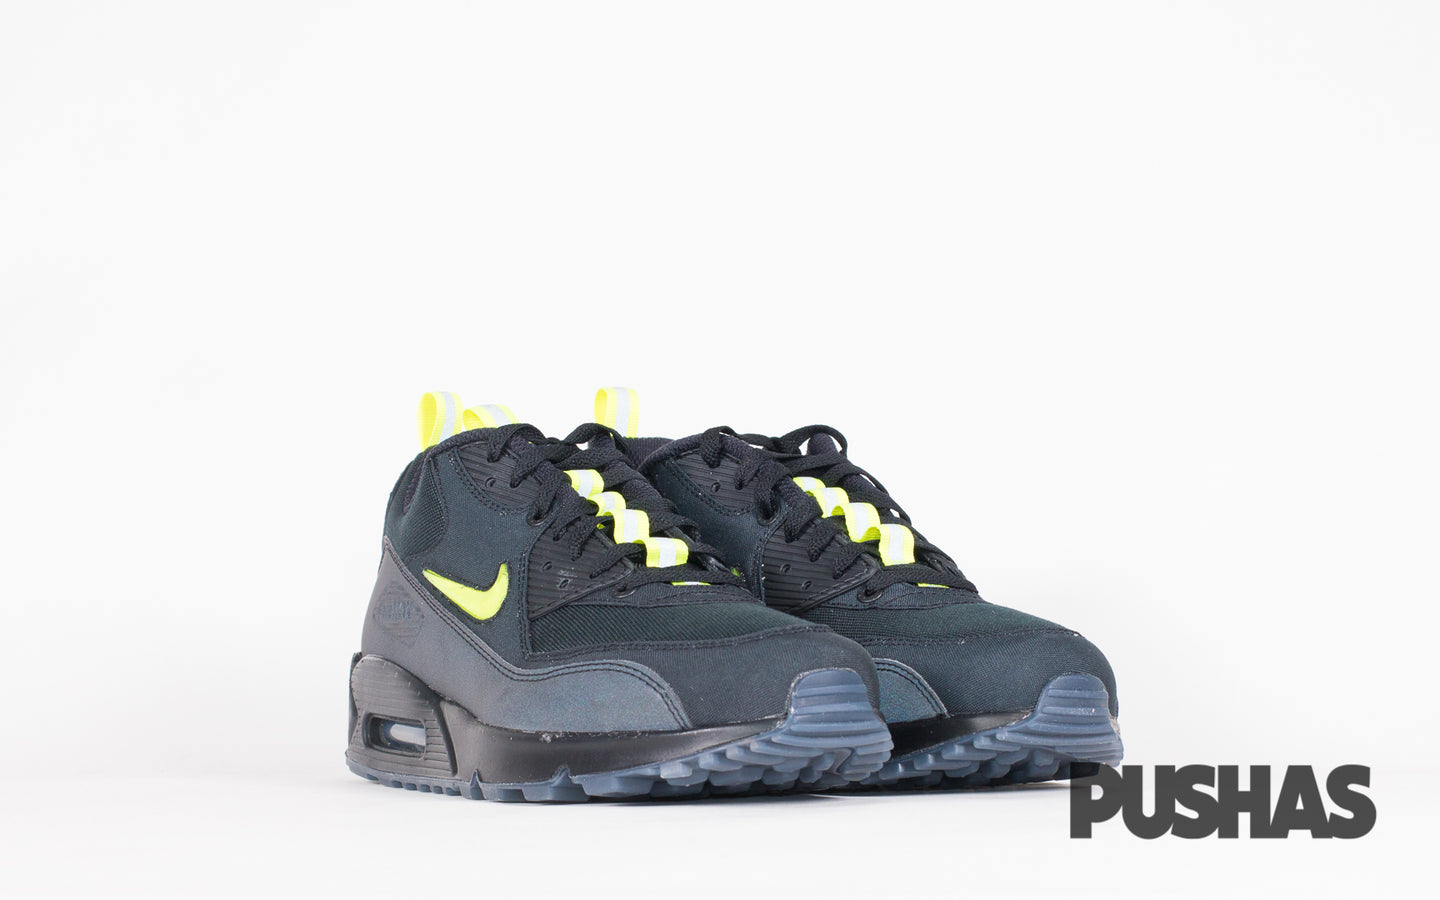 pushas-nike-Air-Max-90-The-Basement-Manchester